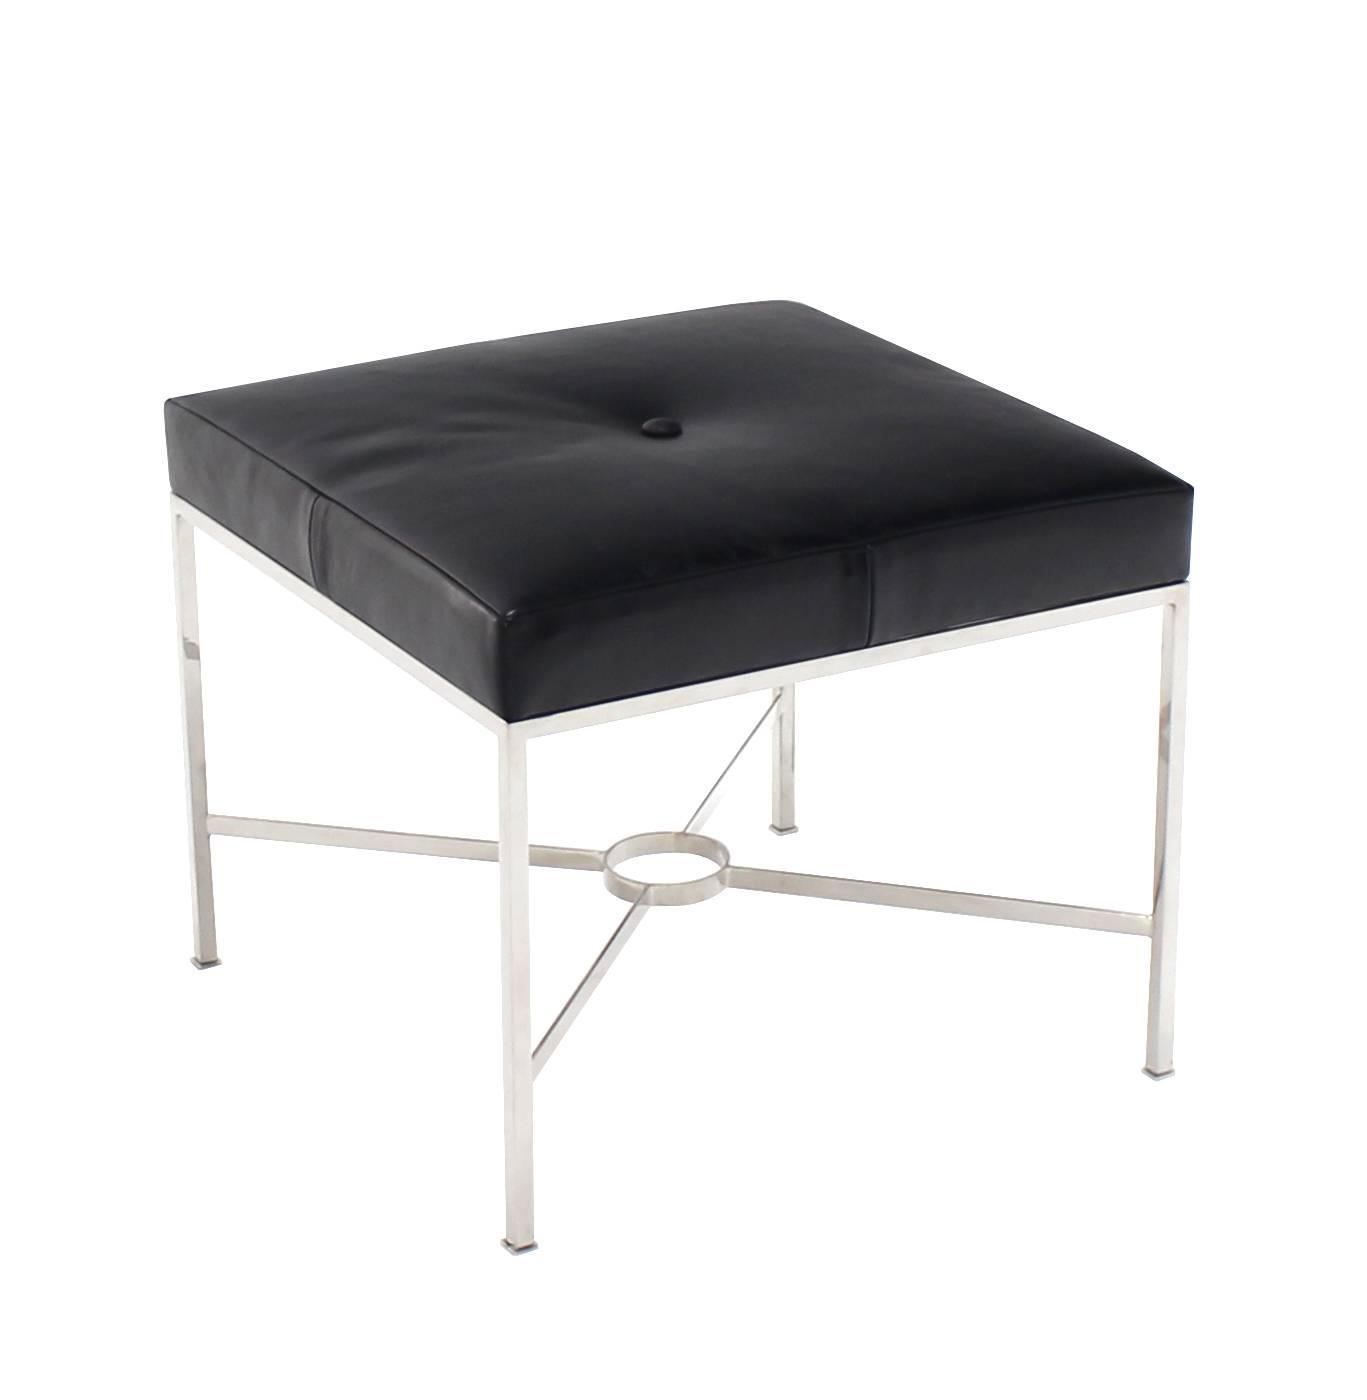 X Base Chrome And Leather Upholstery Square Bench For Sale At 1stdibs